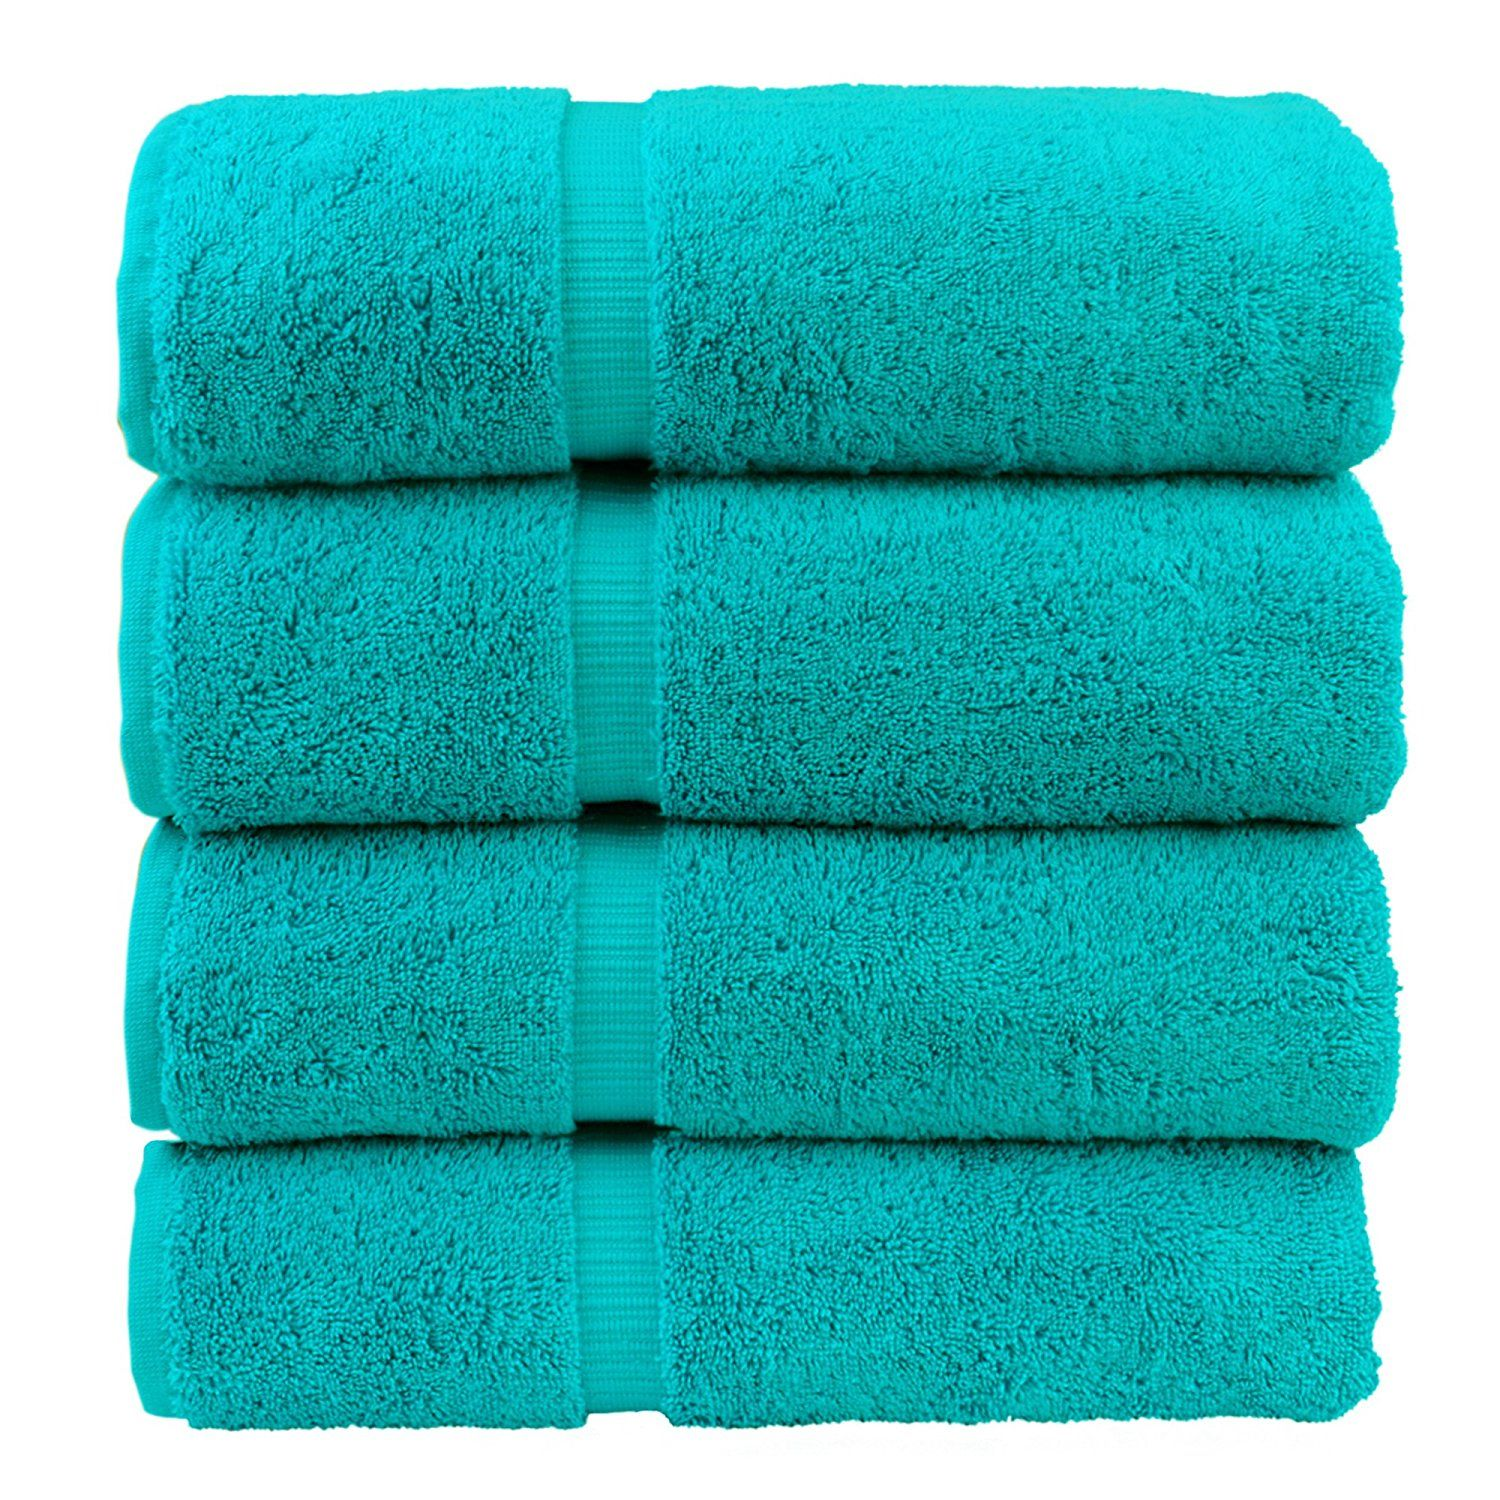 Top 10 Best Bath Towels In 2020 Reviews With Images Best